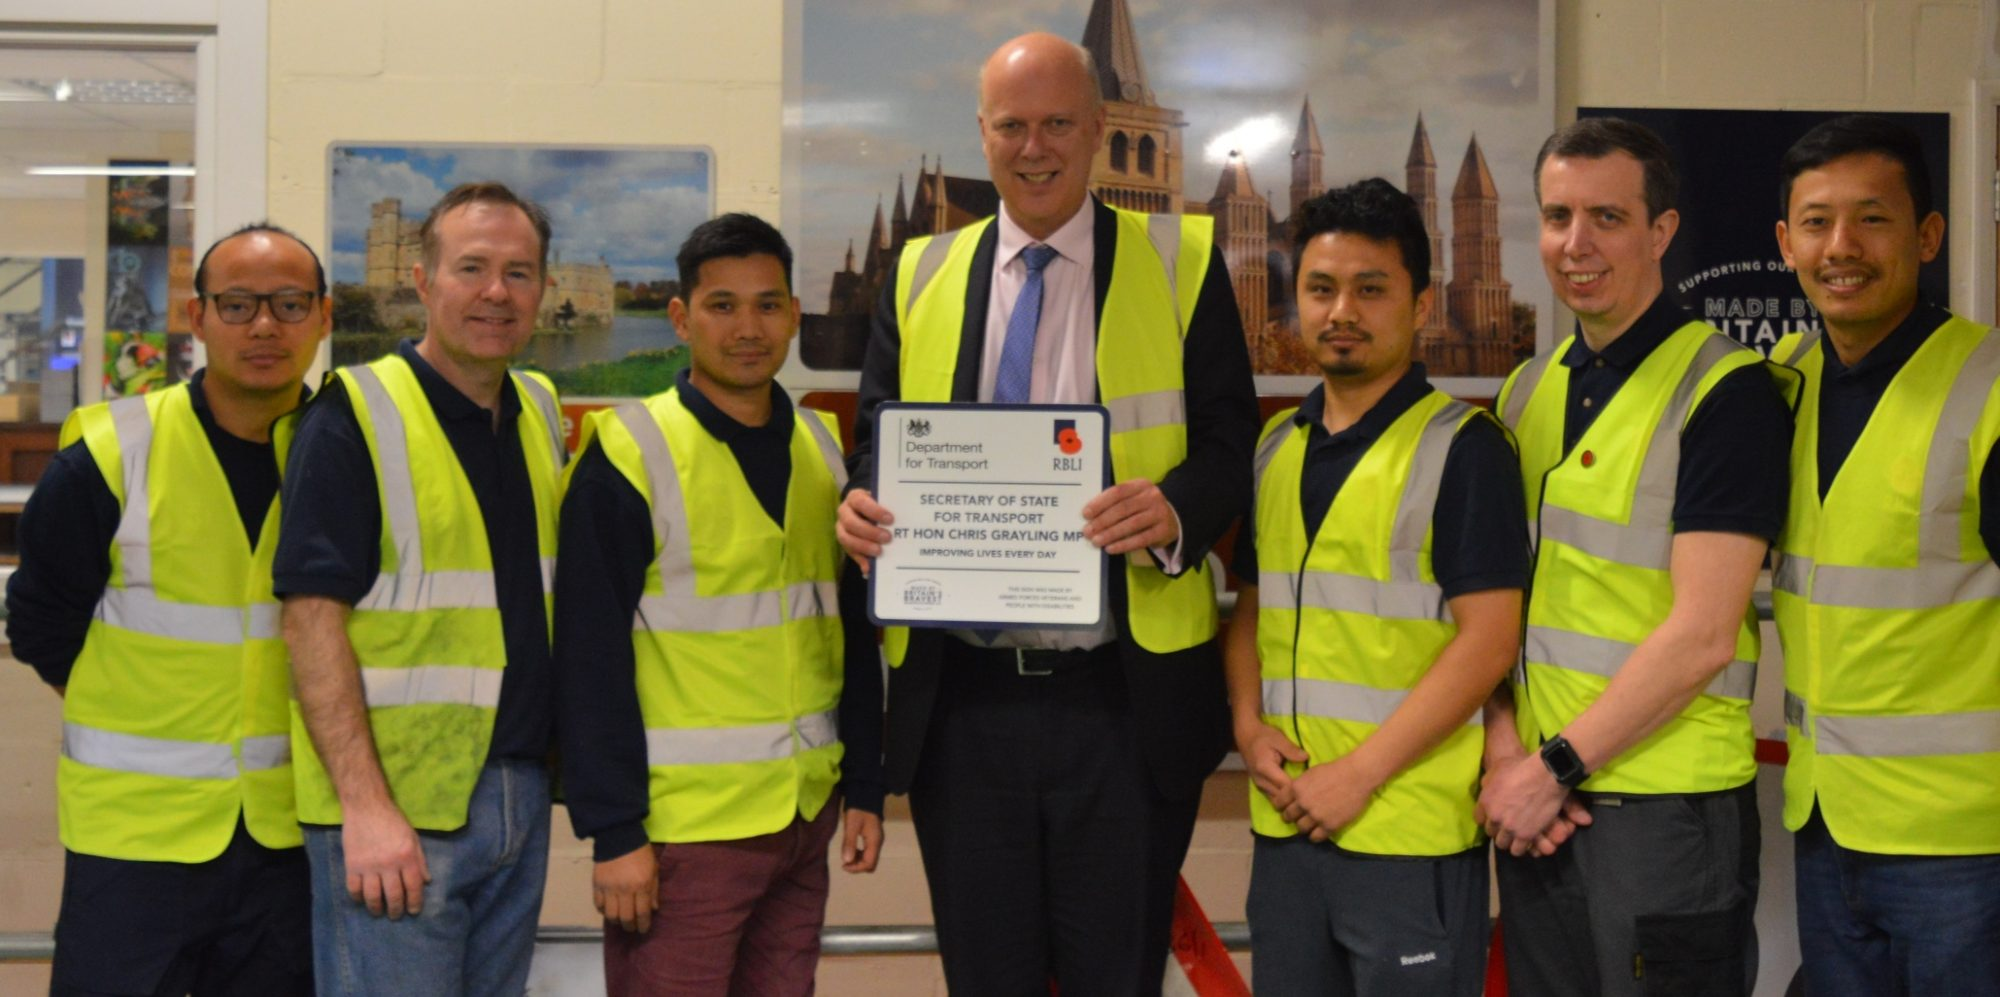 Transport Secretary visits Britain's Bravest Manufacturing Company to help more Disabled Veterans into work